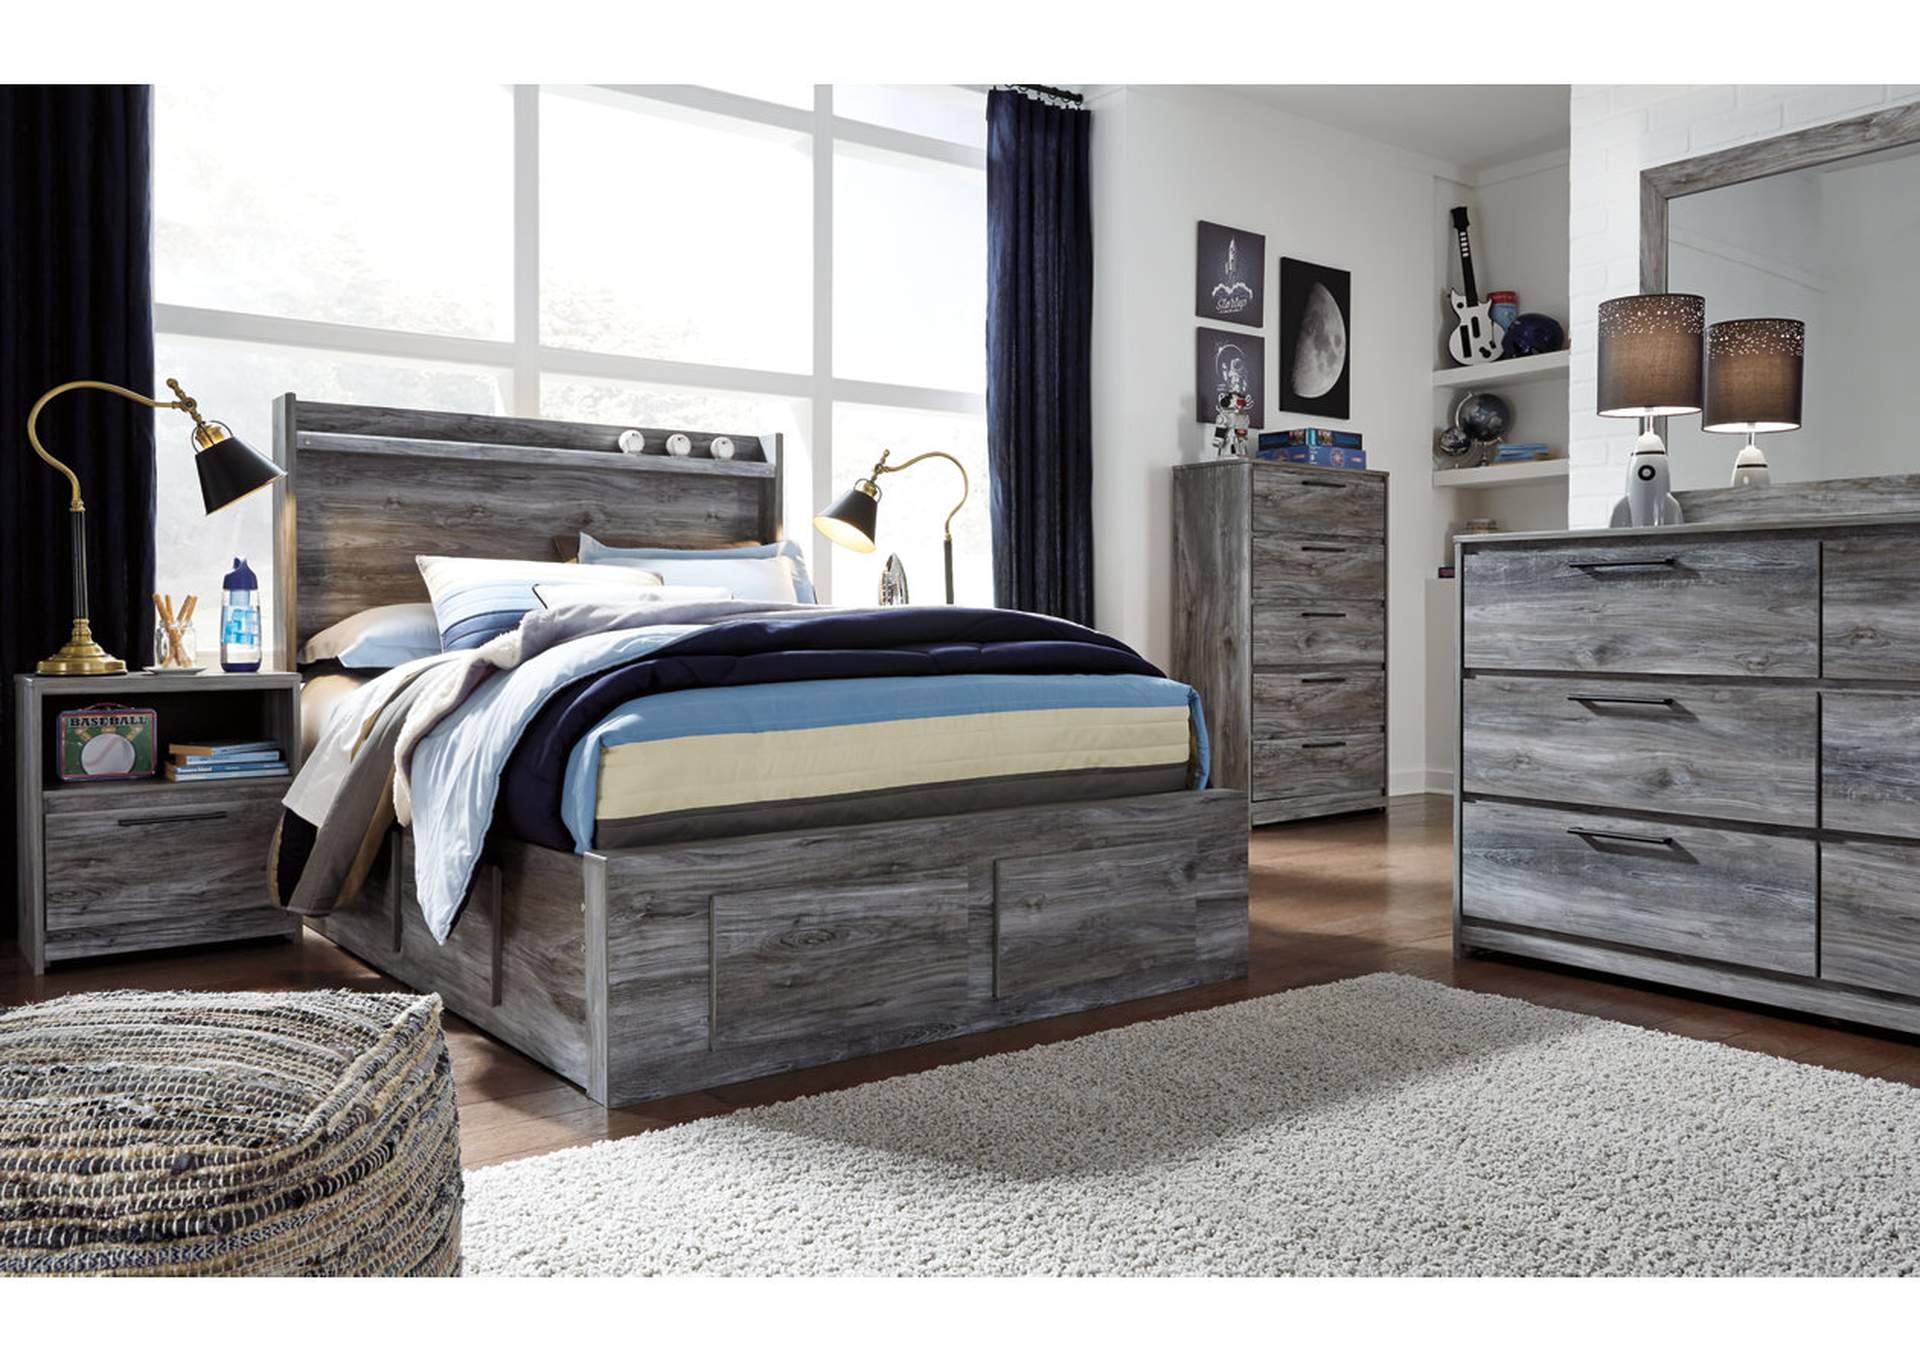 Baystorm Full Panel Bed with 6 Storage Drawers,Signature Design By Ashley